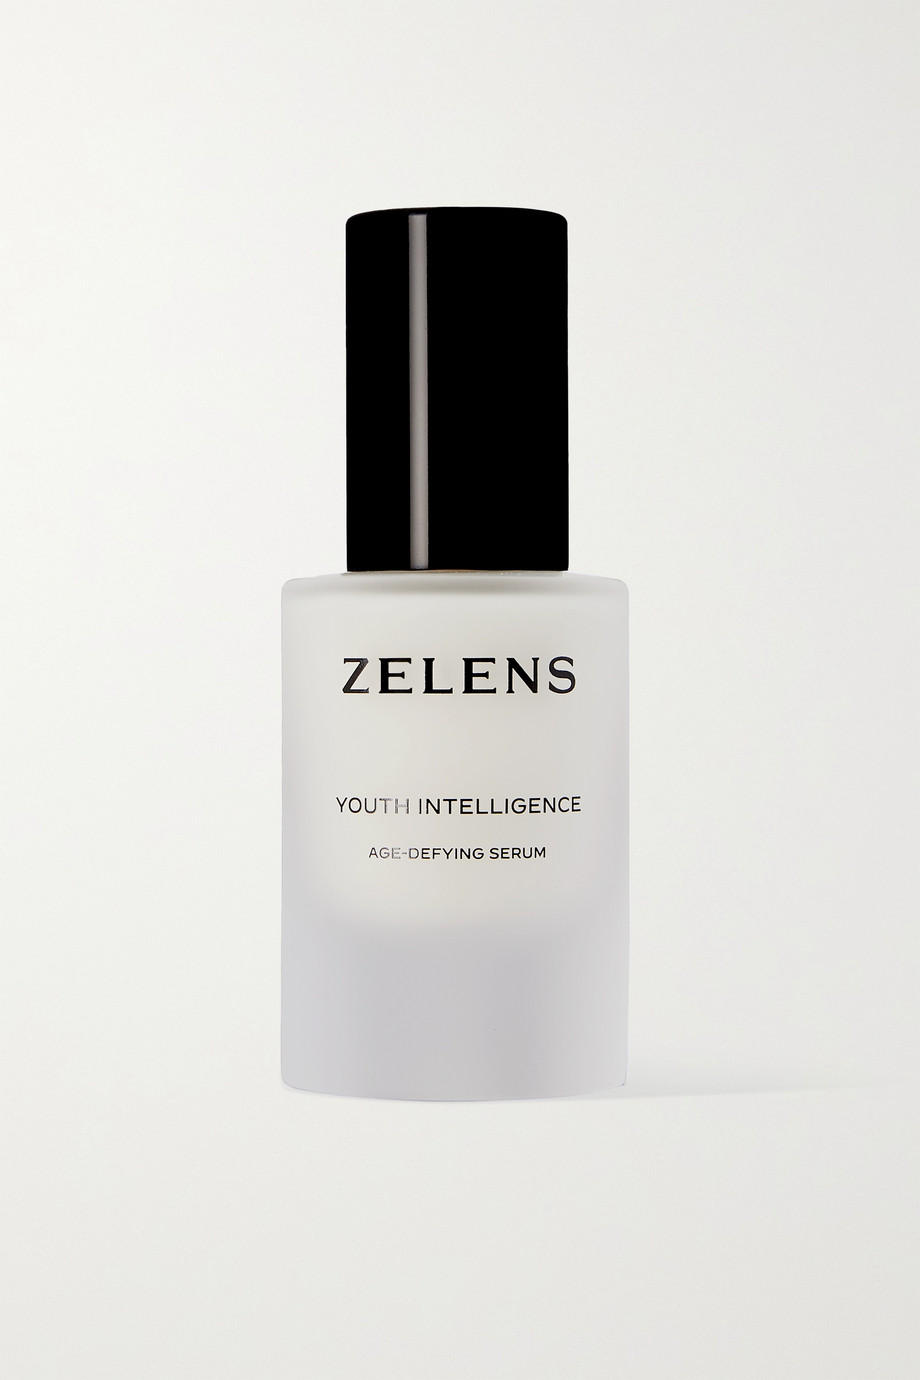 Youth Concentrate Serum, 30ml, by Zelens